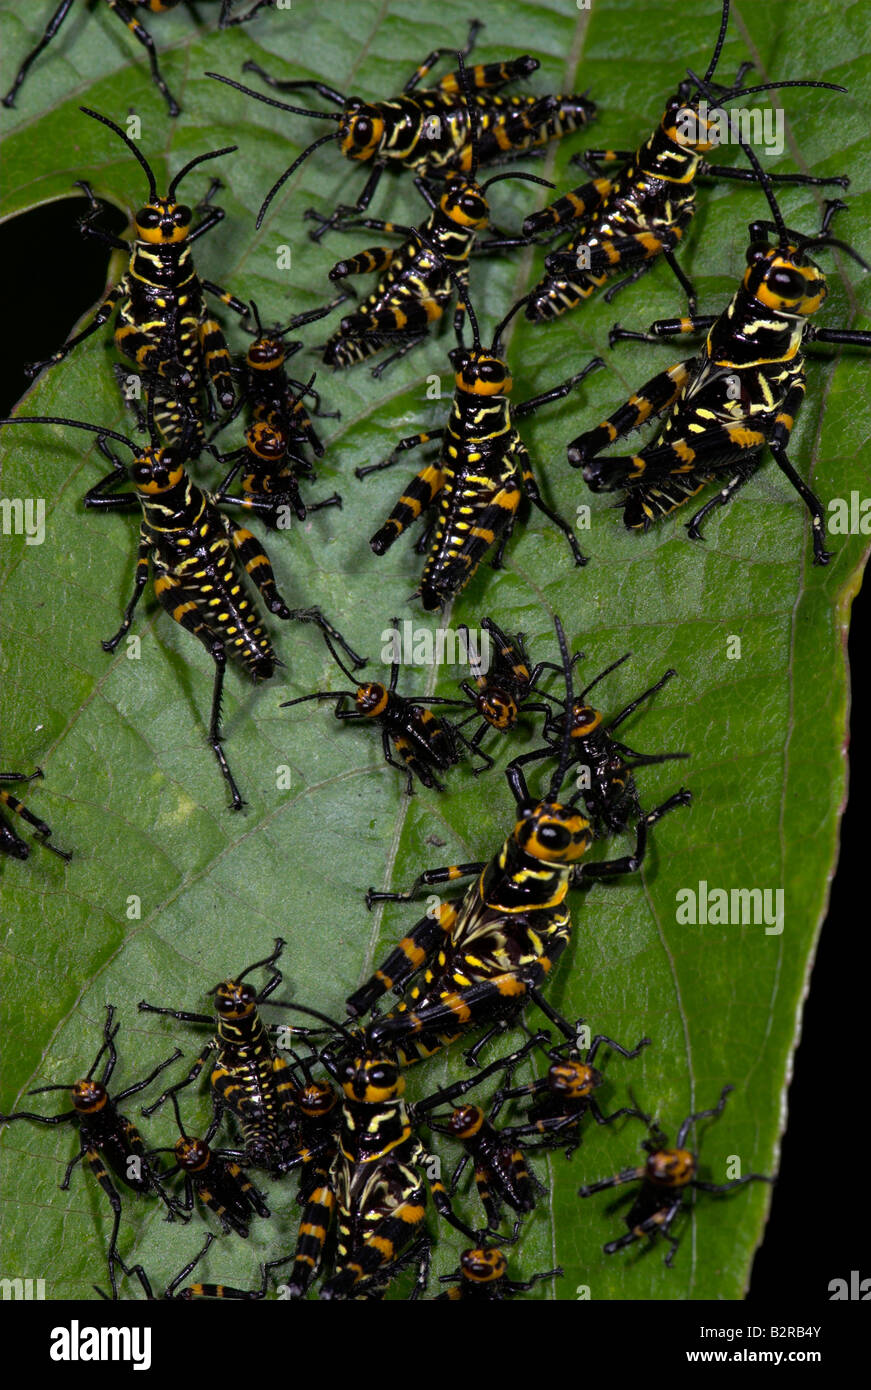 An aggregation of aposematically colored grasshoppers Costa Rica - Stock Image